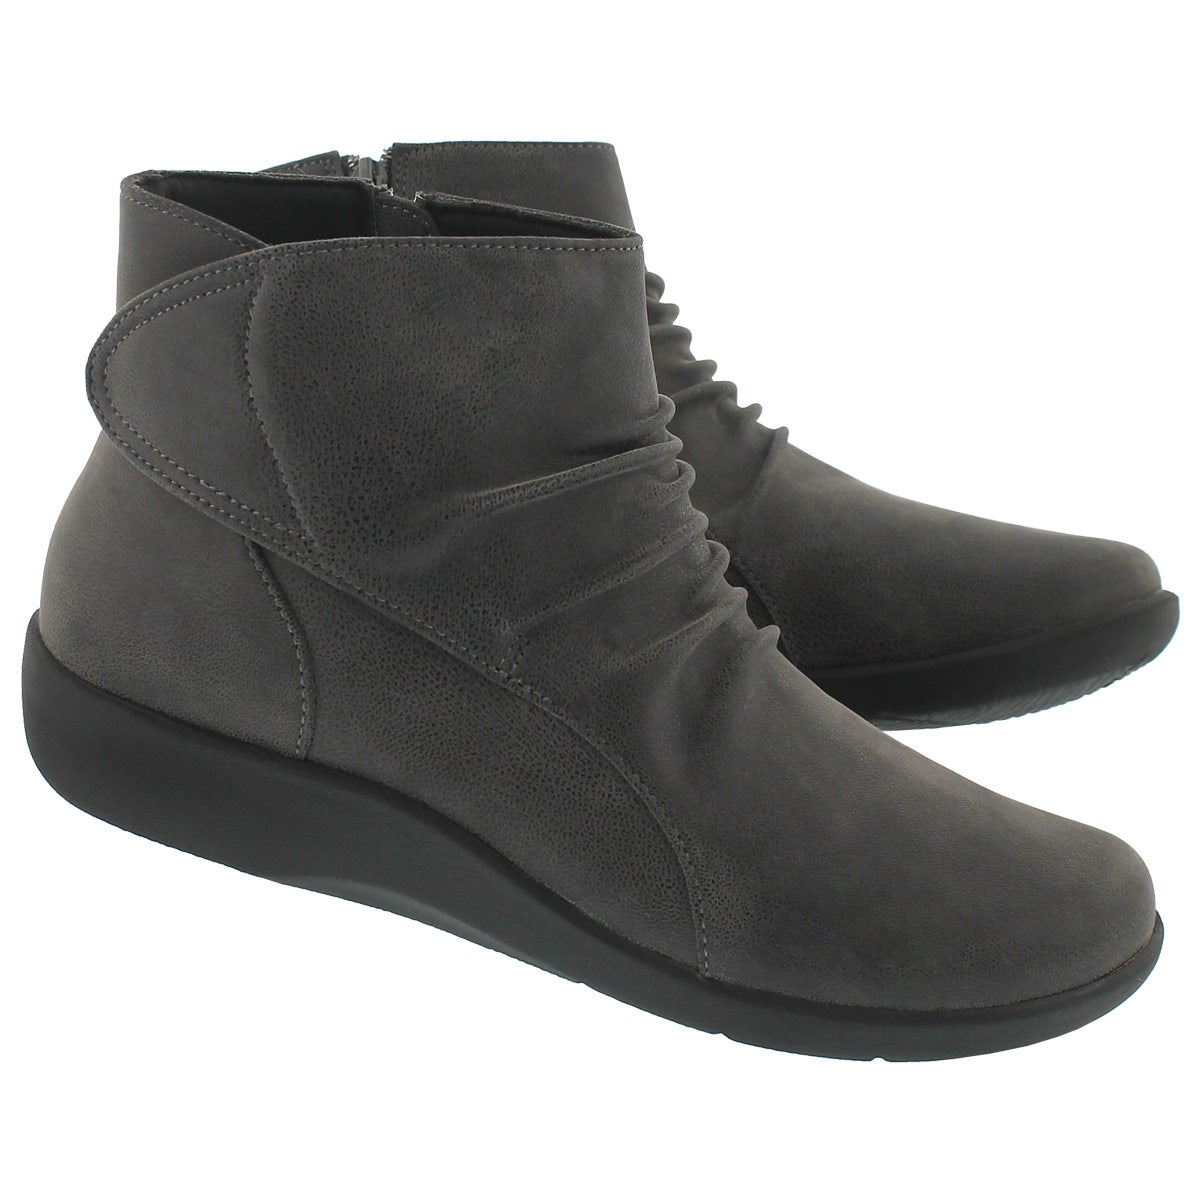 Lds Sillian Chell grey ankle boot